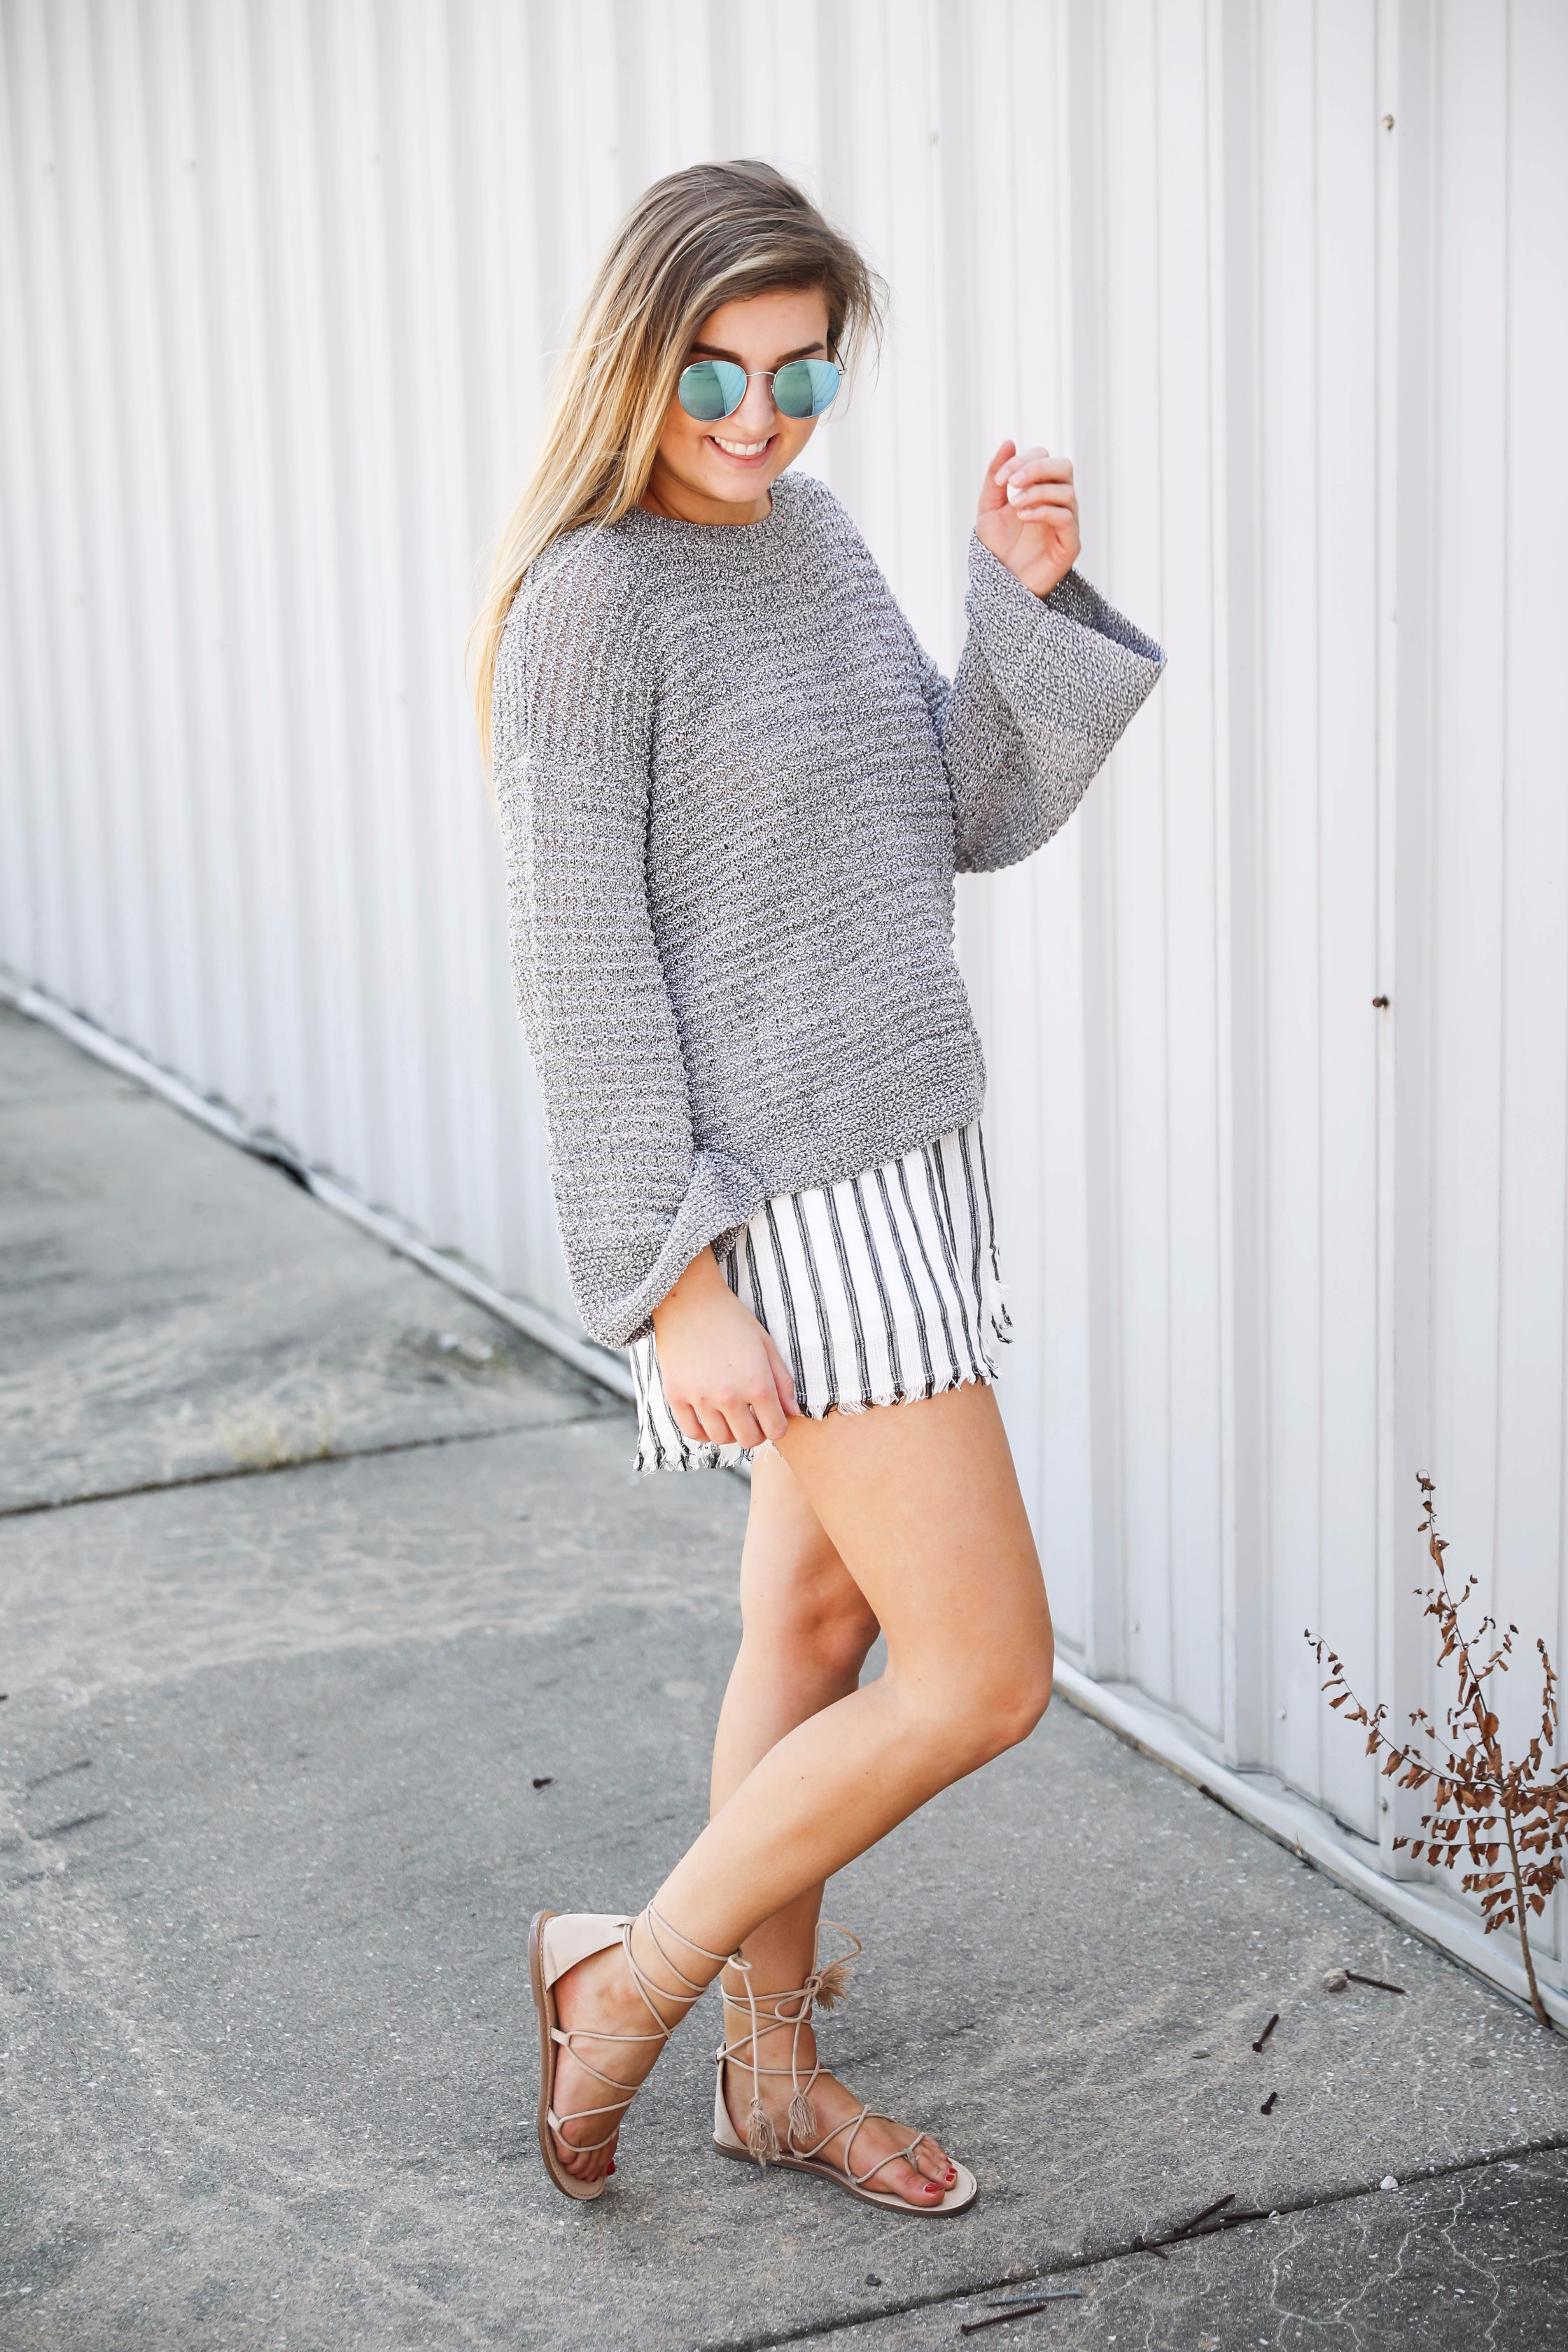 Sweater Round Up for Fall 2017 on fashion blog daily dose of charm by lauren Lindmark